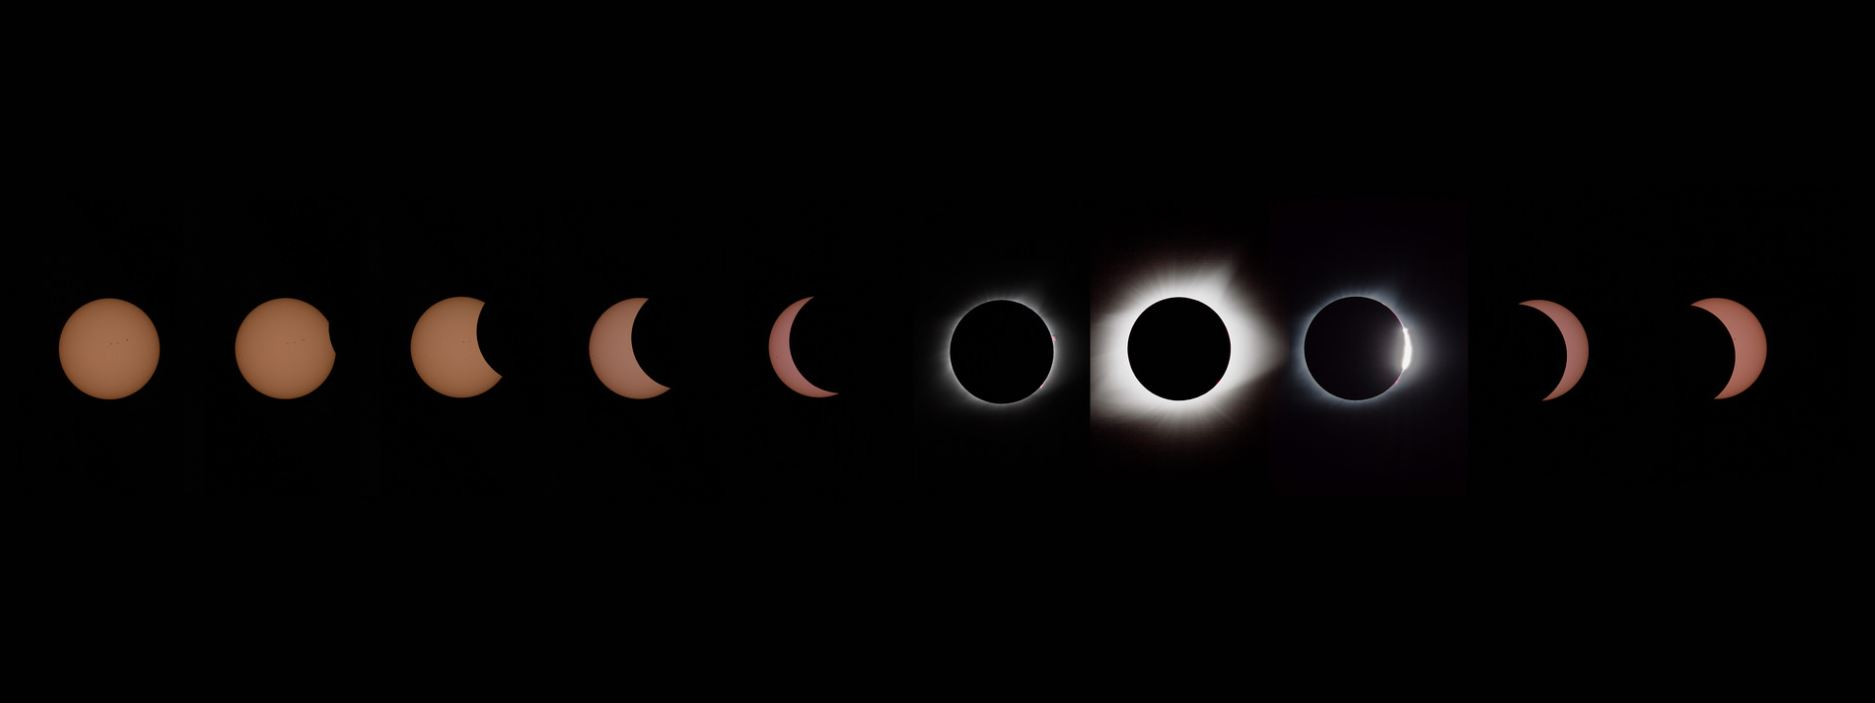 Knox Worde total solar eclipse sequence